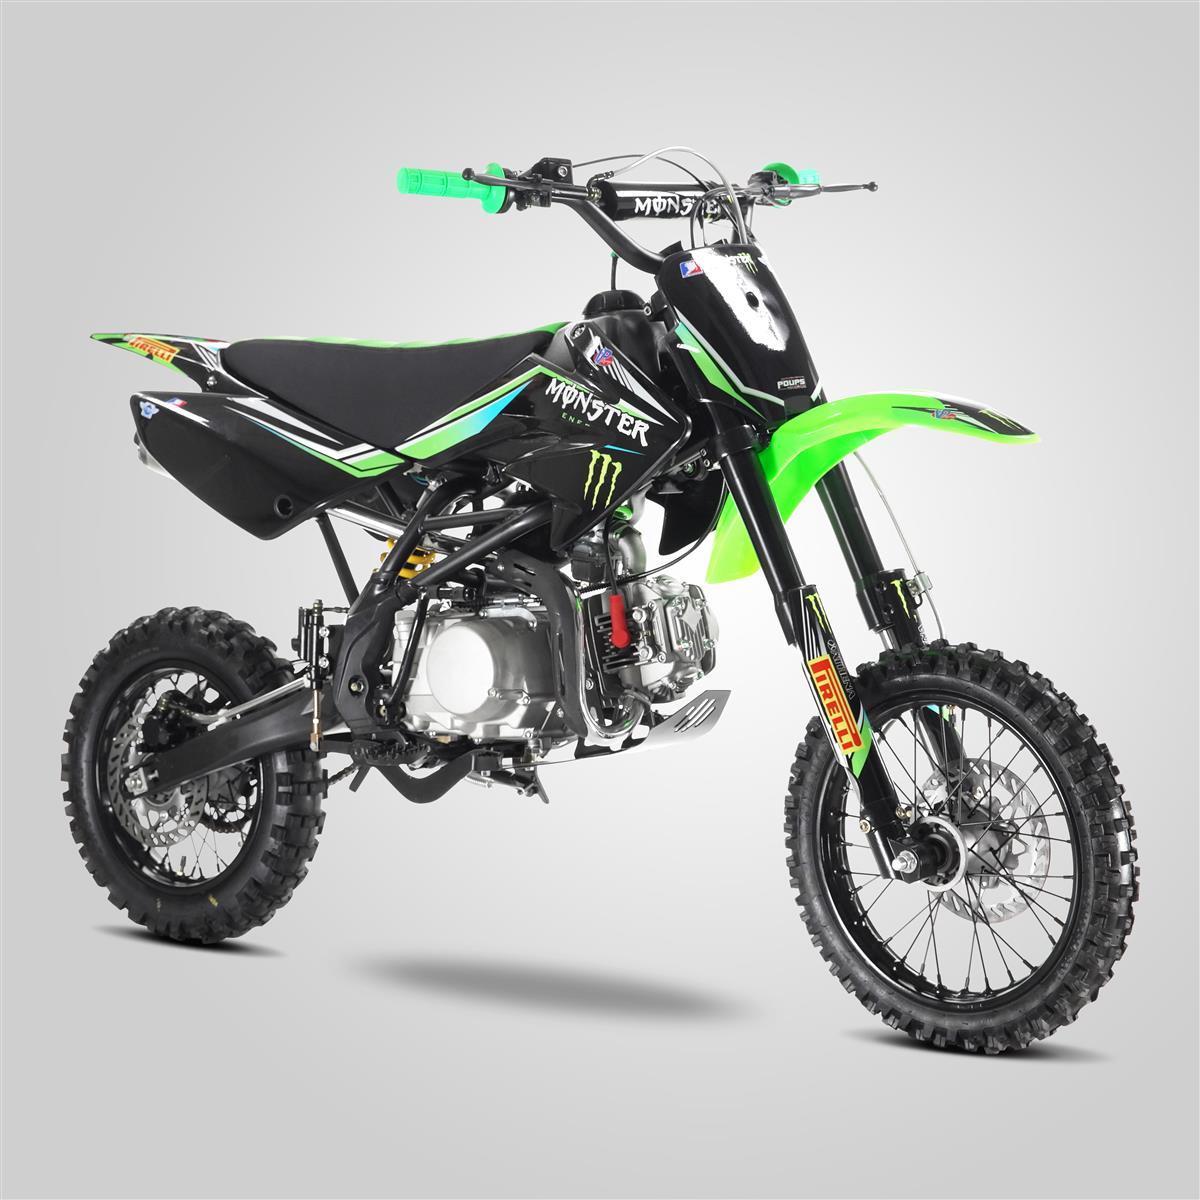 avis dirt bike apollo 125cc